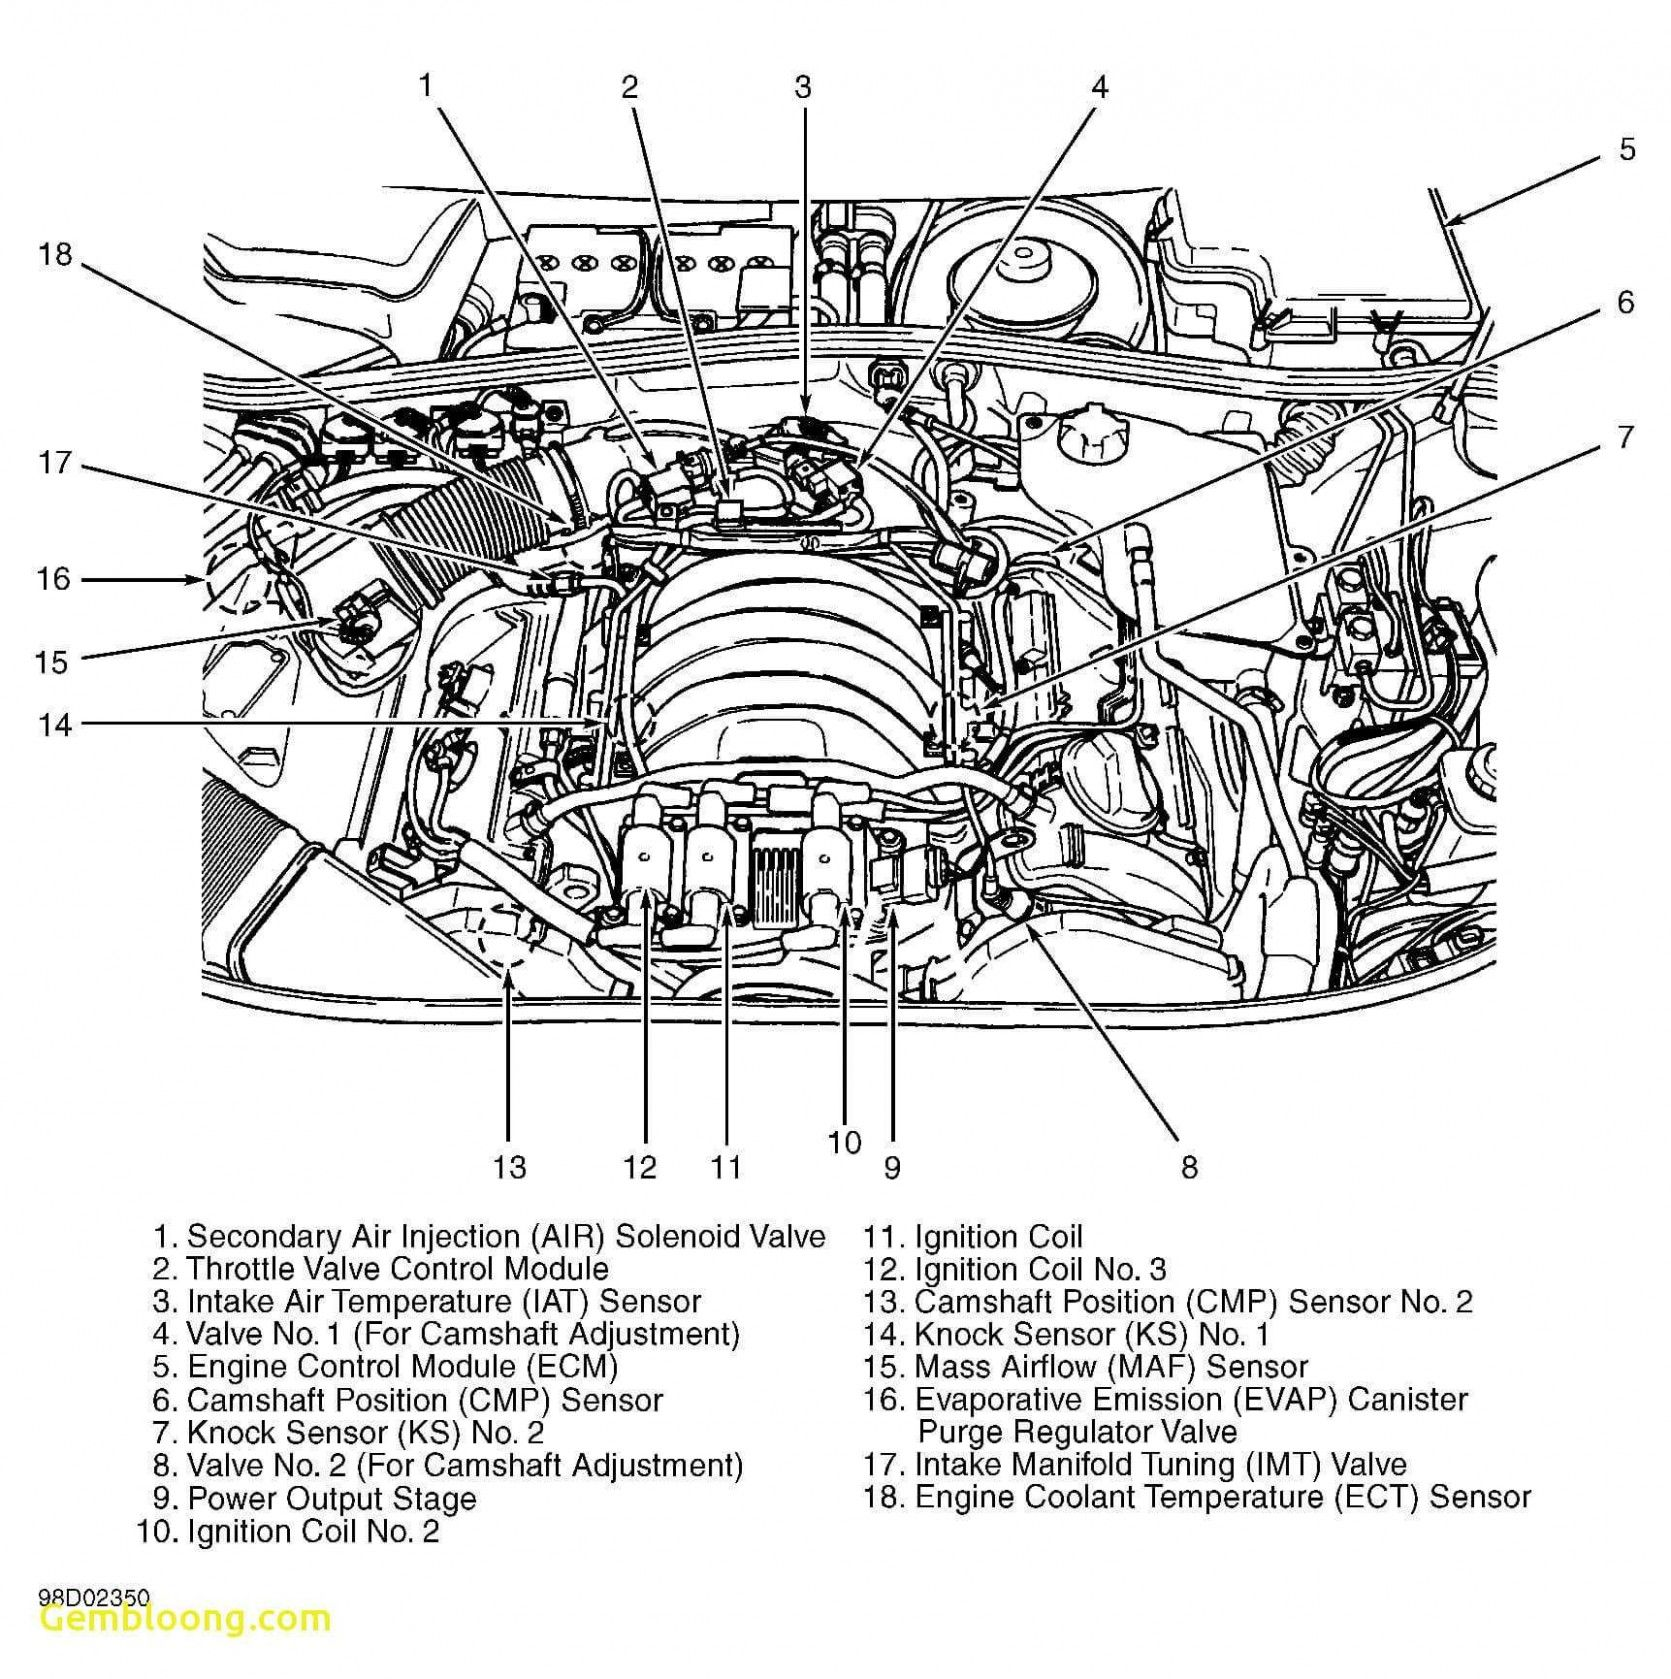 5 Vw Jetta 5 5t Engine Diagram 5 Vw Jetta 5 5t Engine